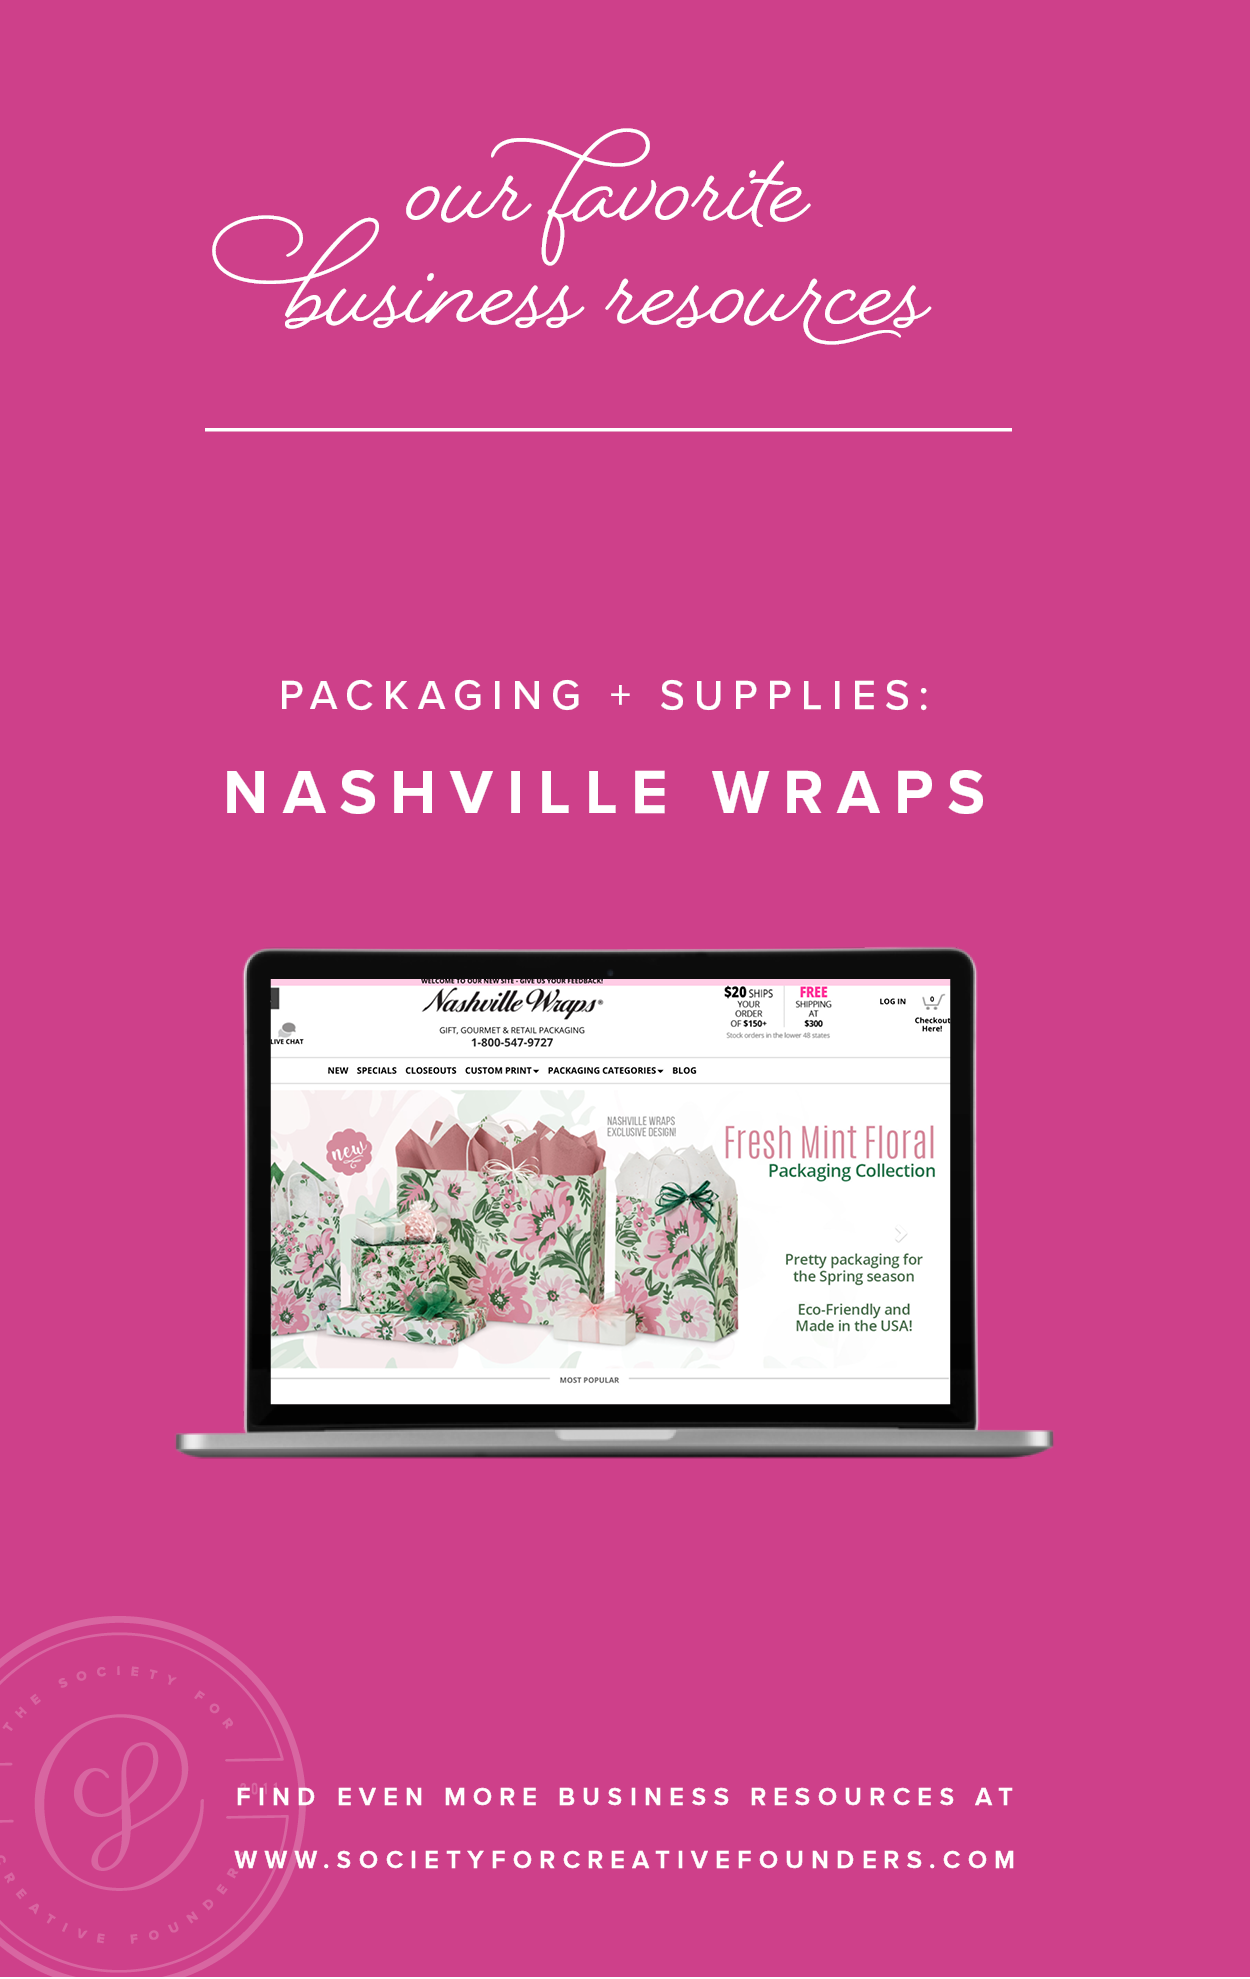 Nashville Wraps - Favorite Business Resources from Society for Creative Founders